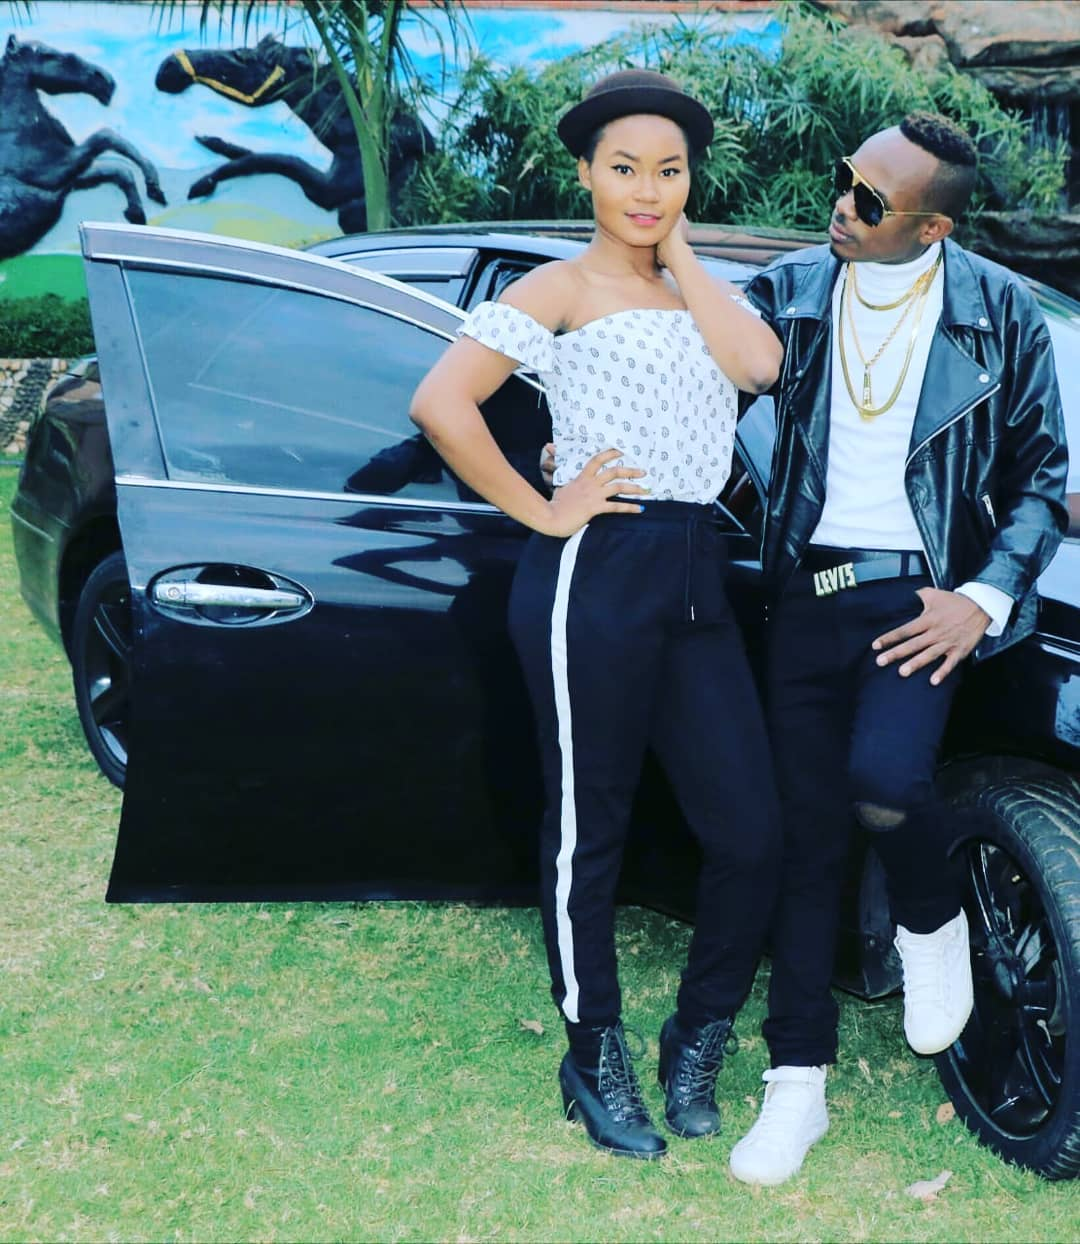 37931966 2184674841564554 1404413314624126976 n - Eric Omondi in bed with Hamissa Mobetto look-a-like (photos)